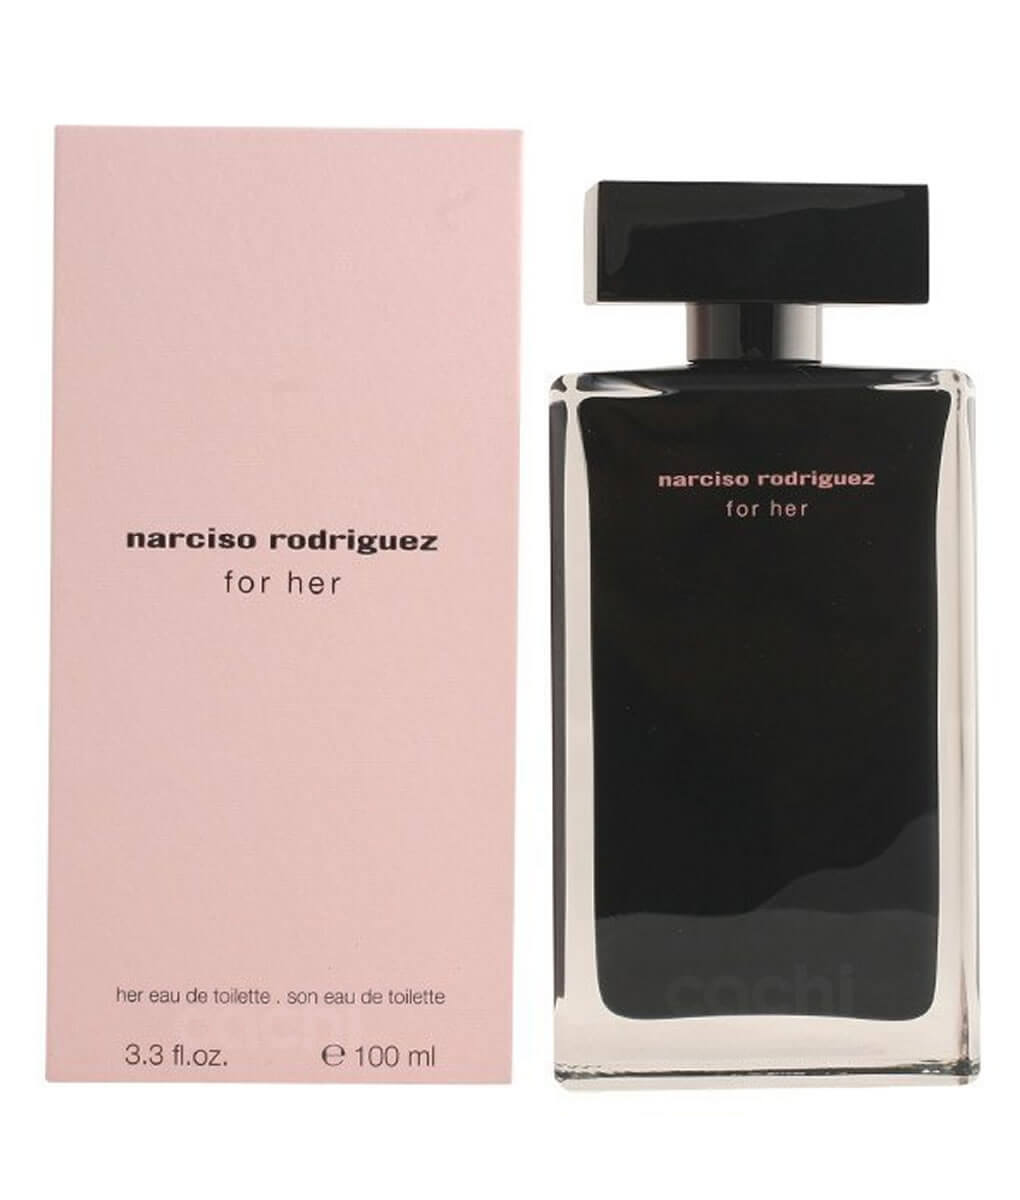 perfume narciso rodriguez for her edt 100ml encontralo en cachi. Black Bedroom Furniture Sets. Home Design Ideas